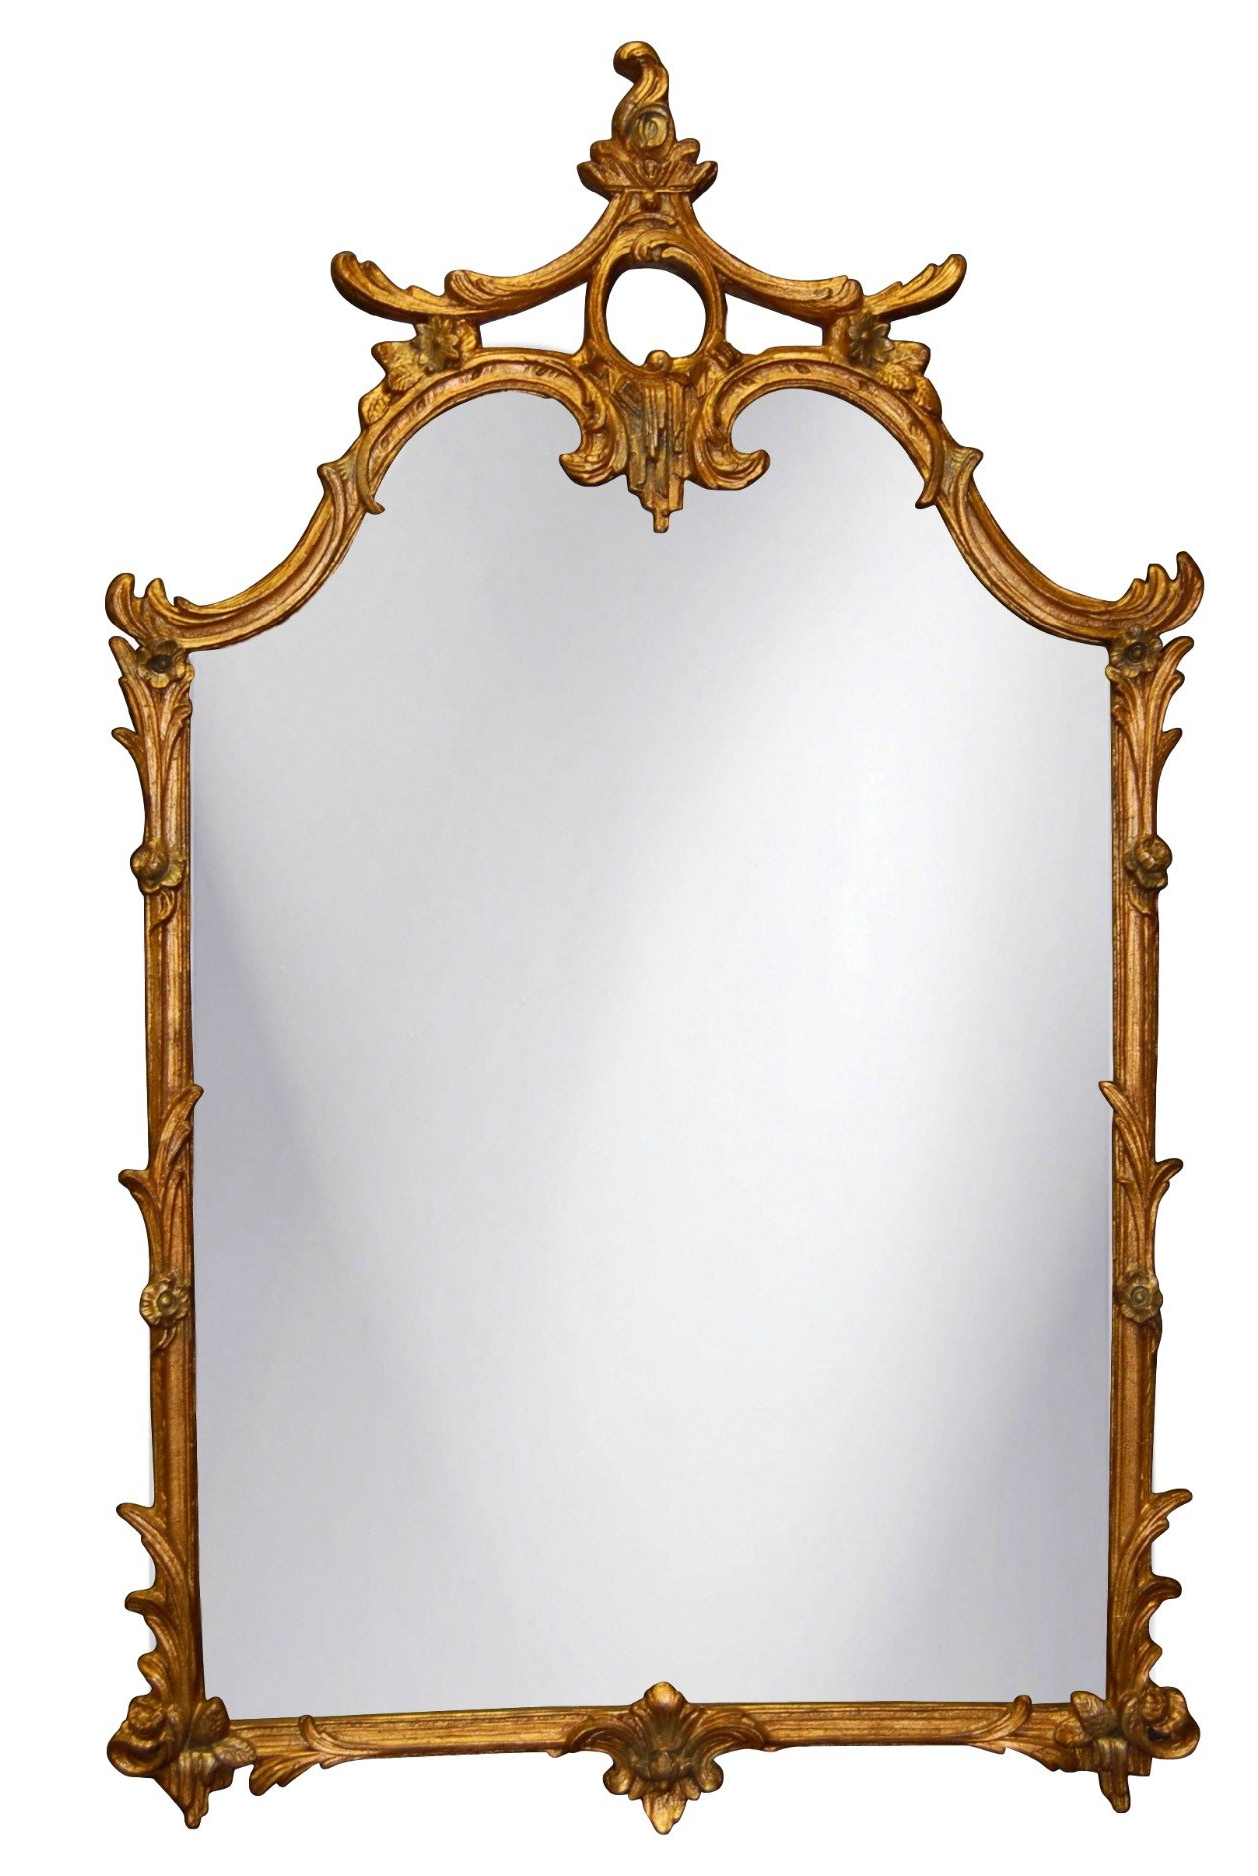 Newest Saylor Wall Mirrors With Regard To Ornate Wall Mirror (Gallery 11 of 20)